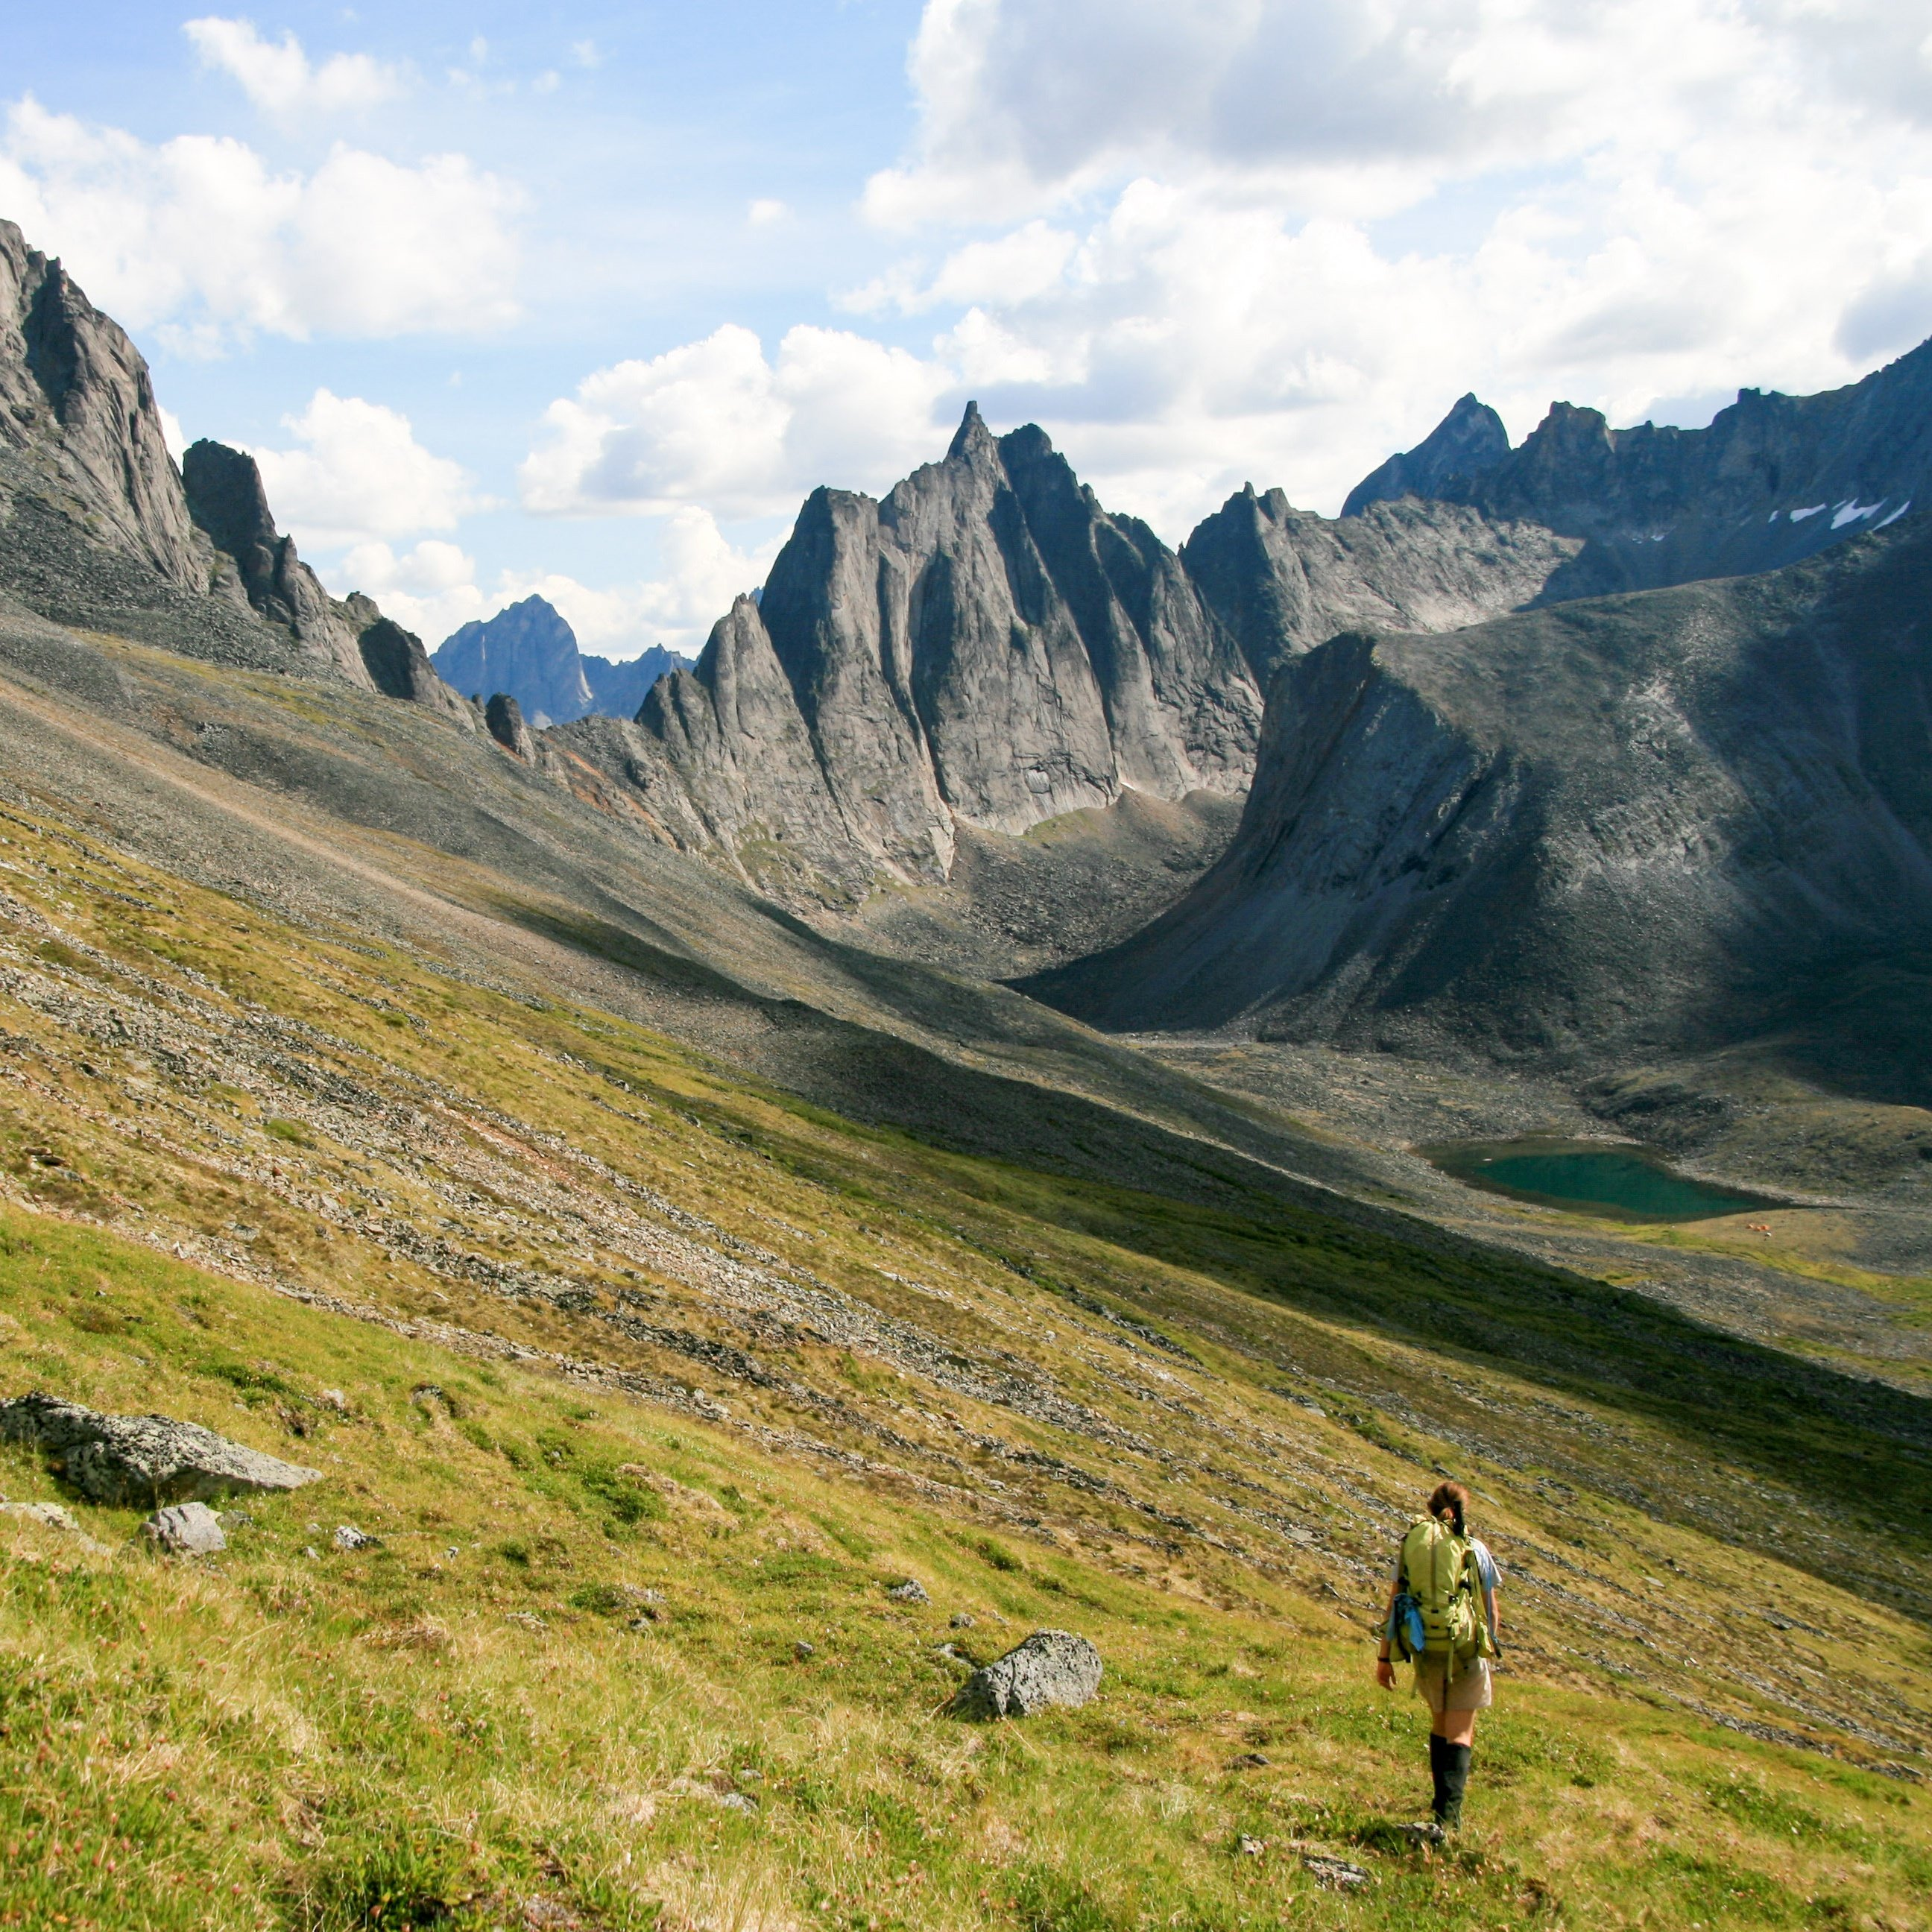 Backpacker hikes through grassy foothills in the Yukon with high, steep peaks in the background